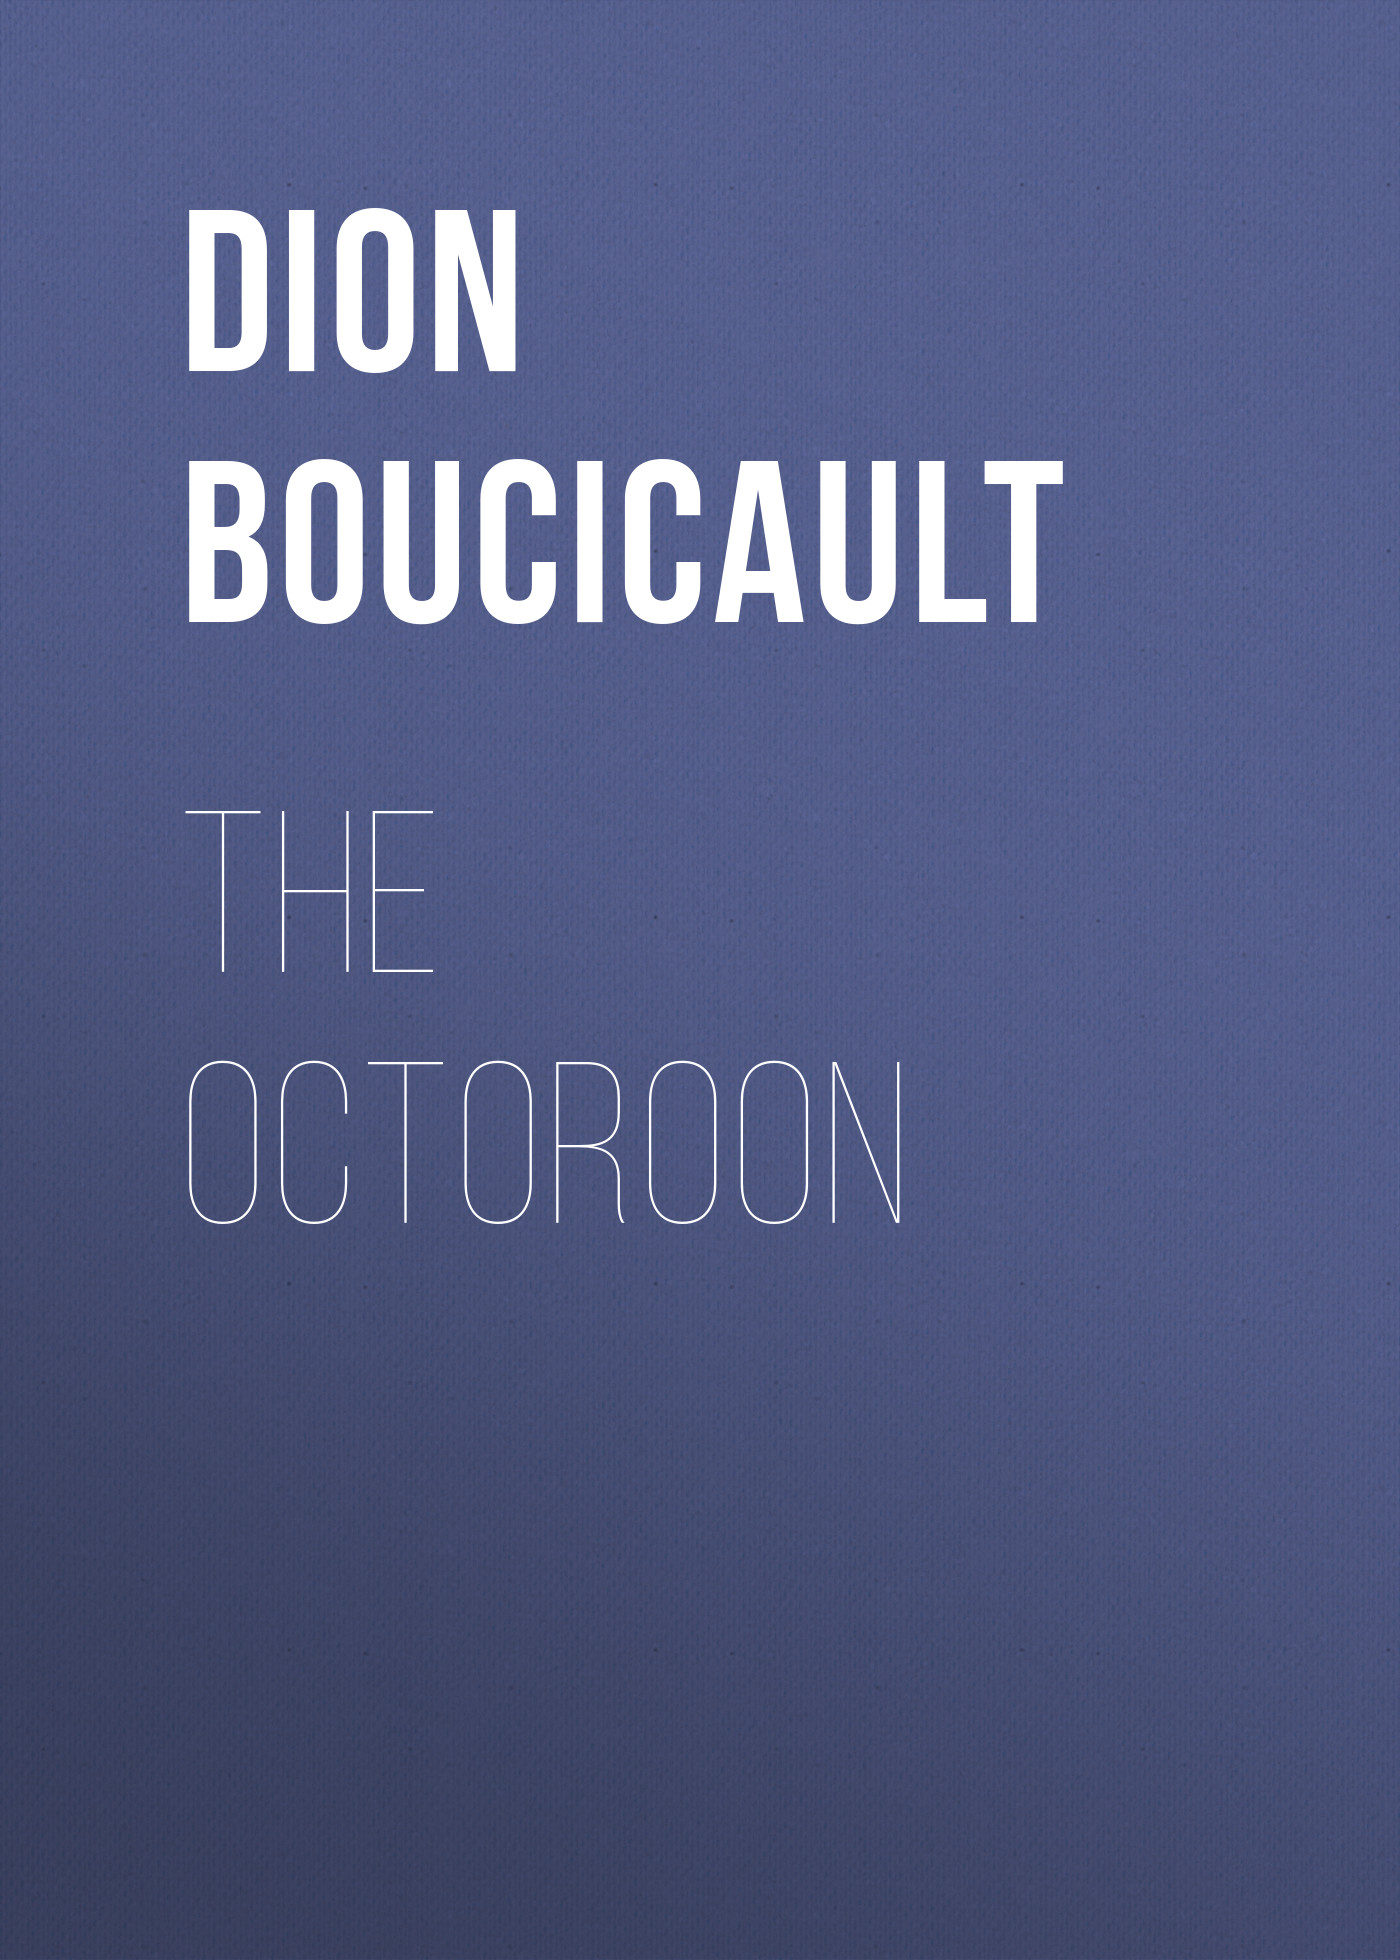 Dion Boucicault The Octoroon lo 18162011jn